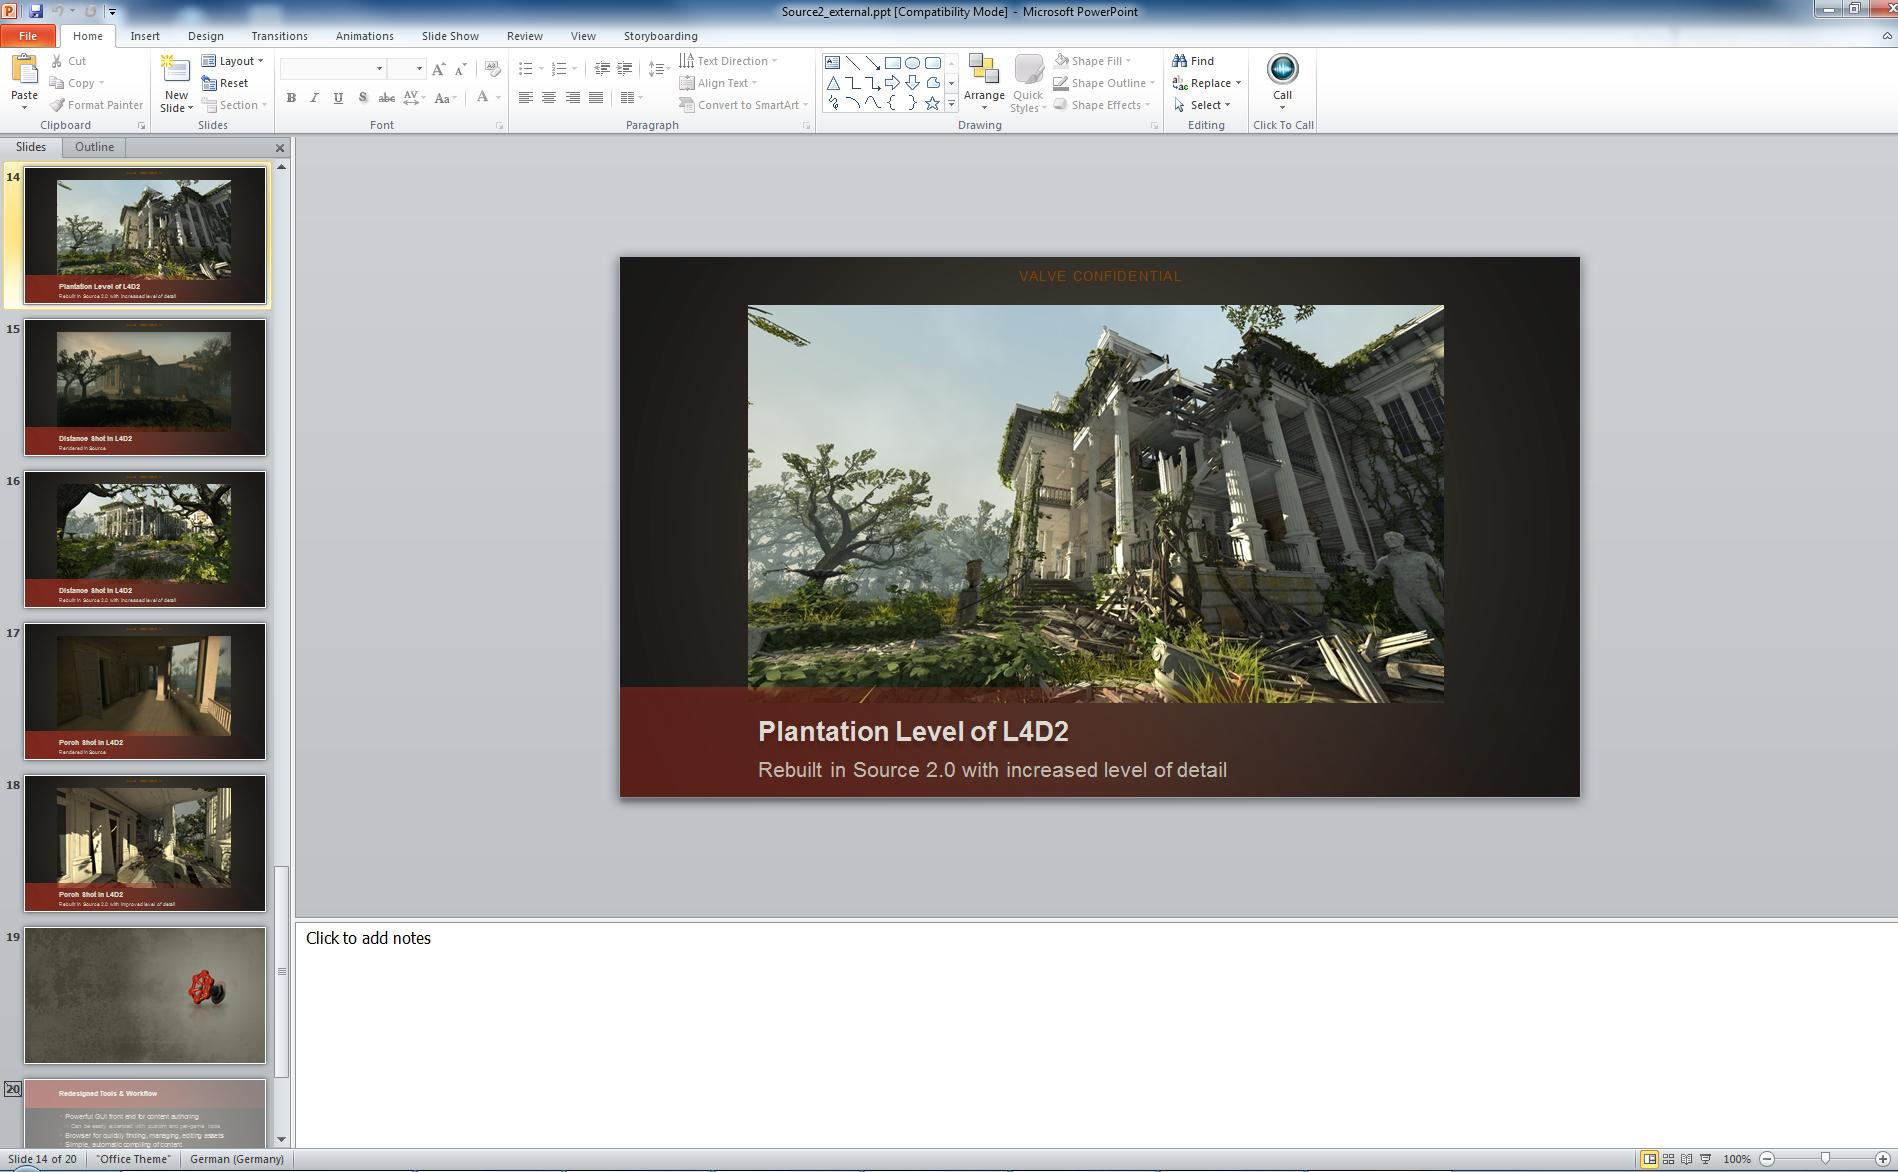 Source2 Presentation - Plantation Level in L4D2